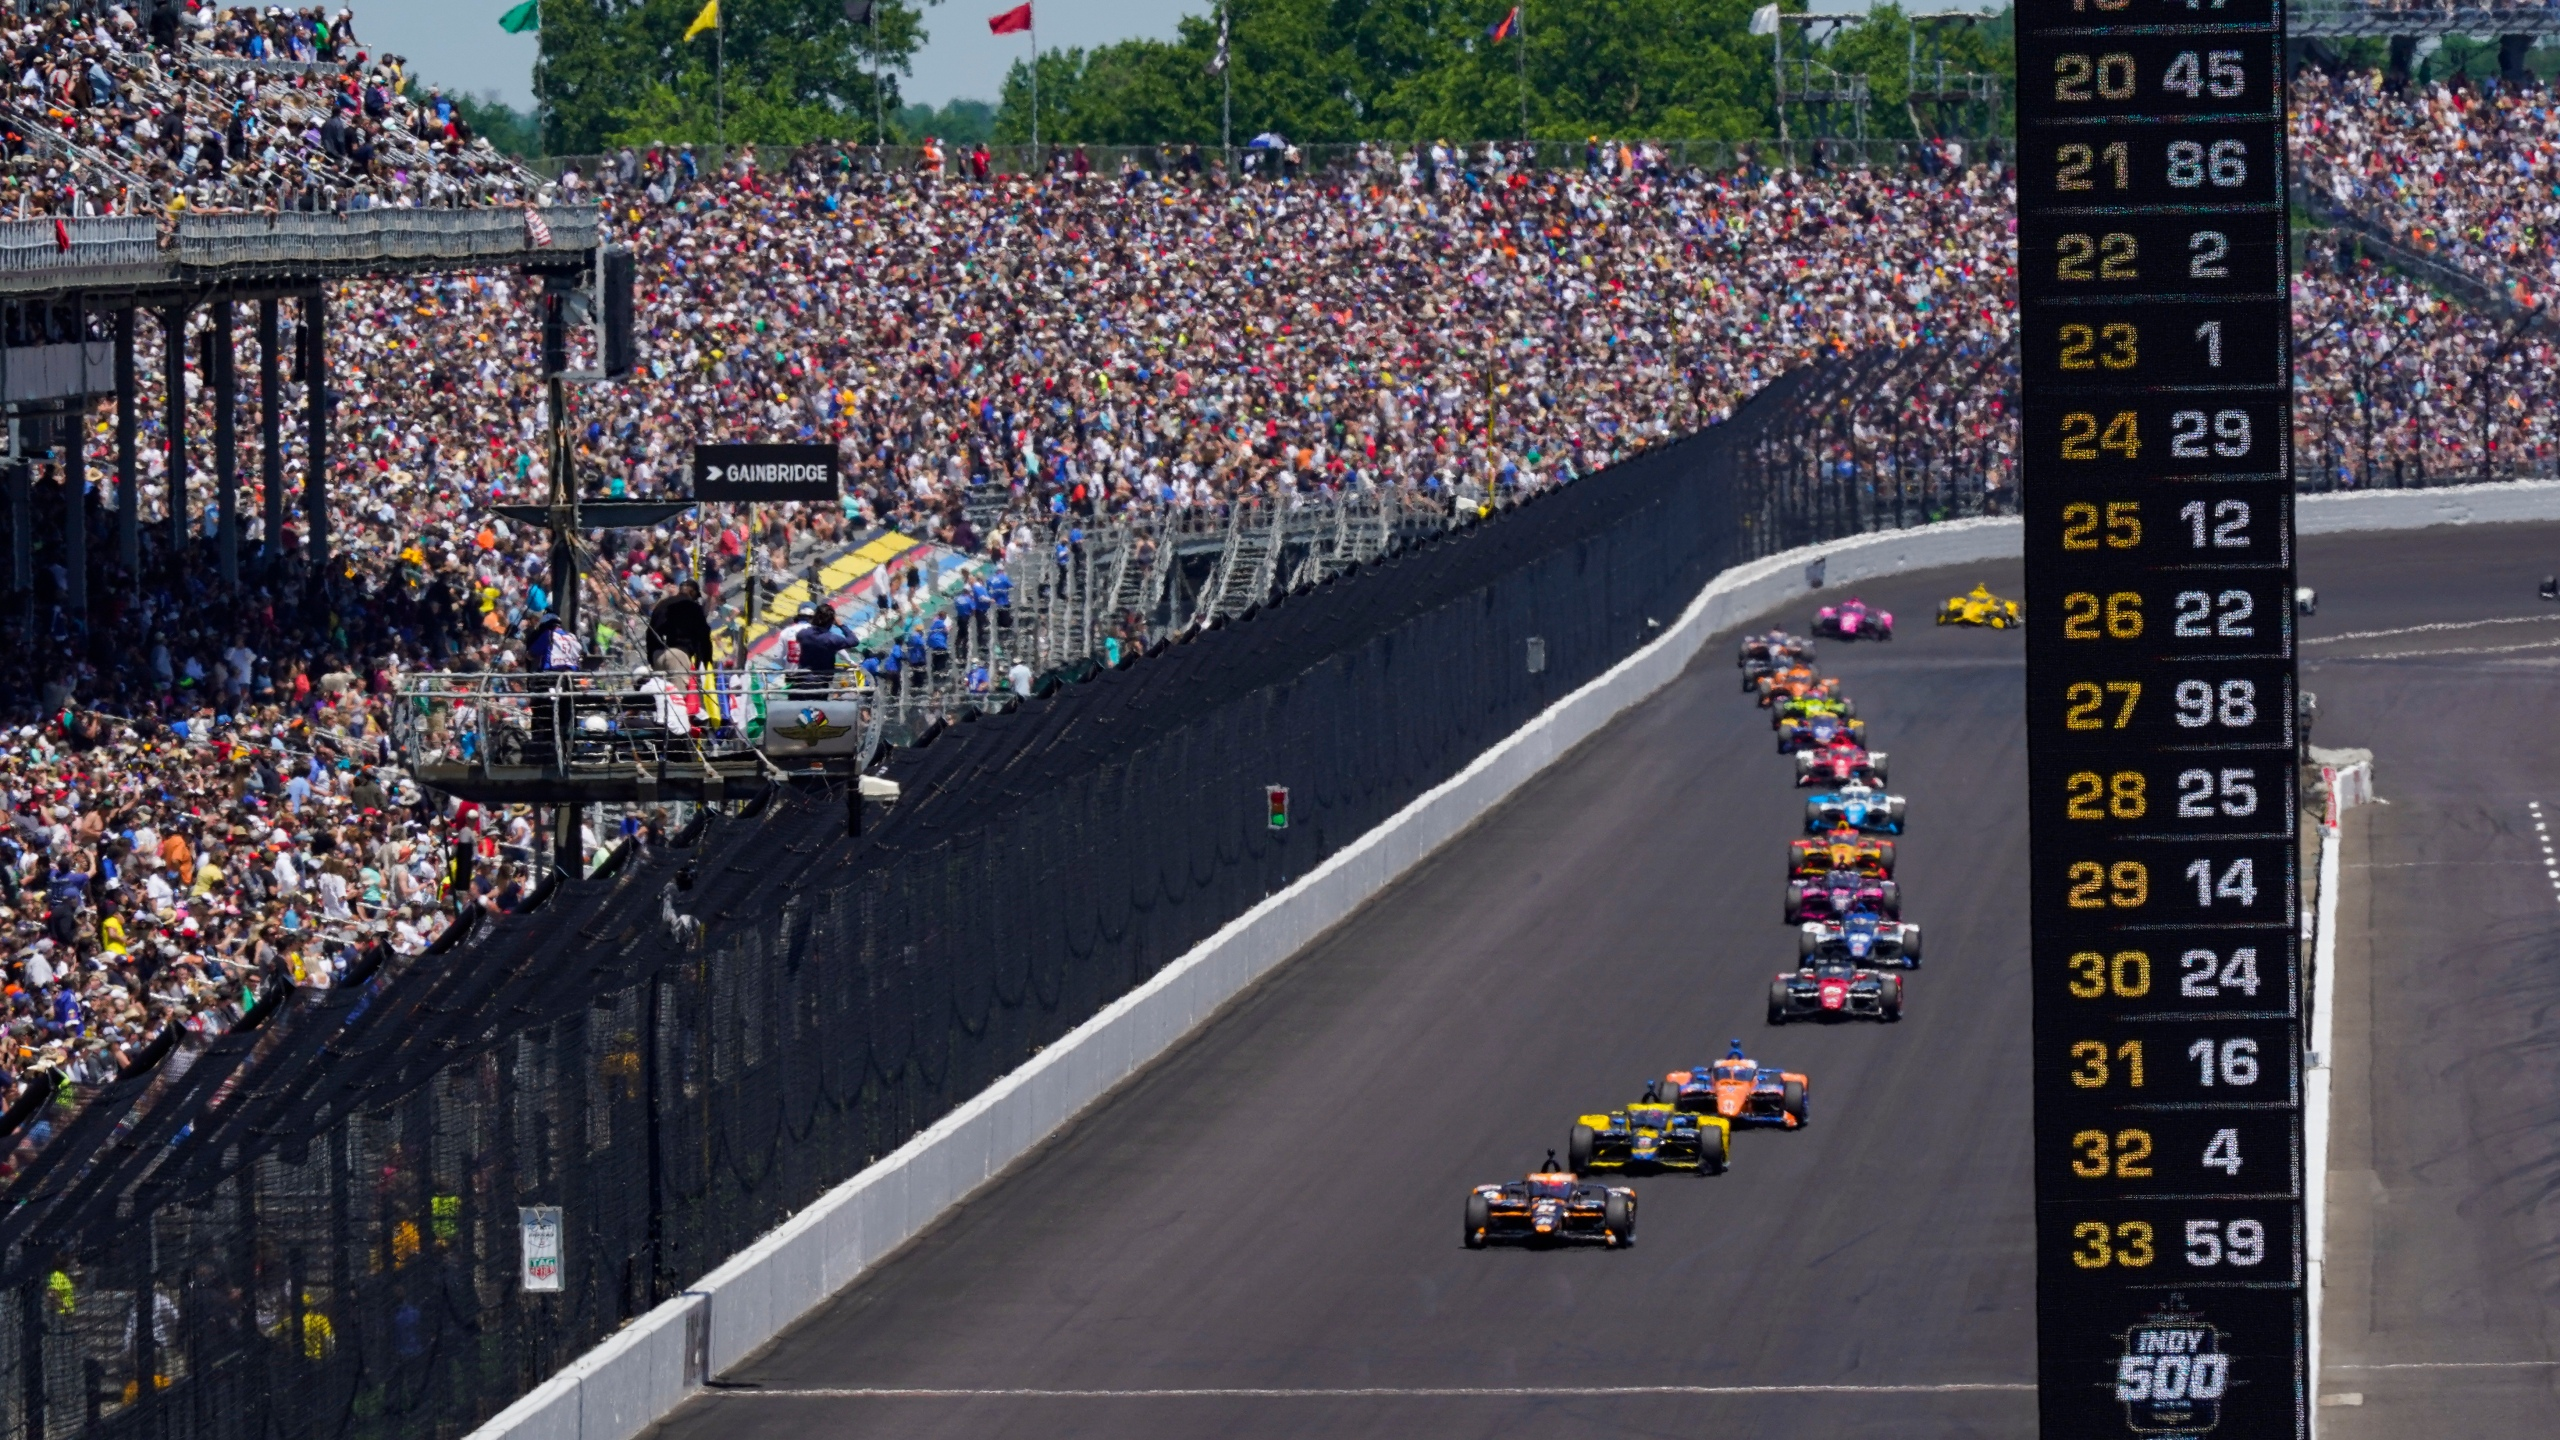 Fans fill the stands as Colton Herta leads the field in the early laps of the Indianapolis 500 auto race at Indianapolis Motor Speedway in Indianapolis, Sunday, May 30, 2021. (AP Photo/Paul Sancya)